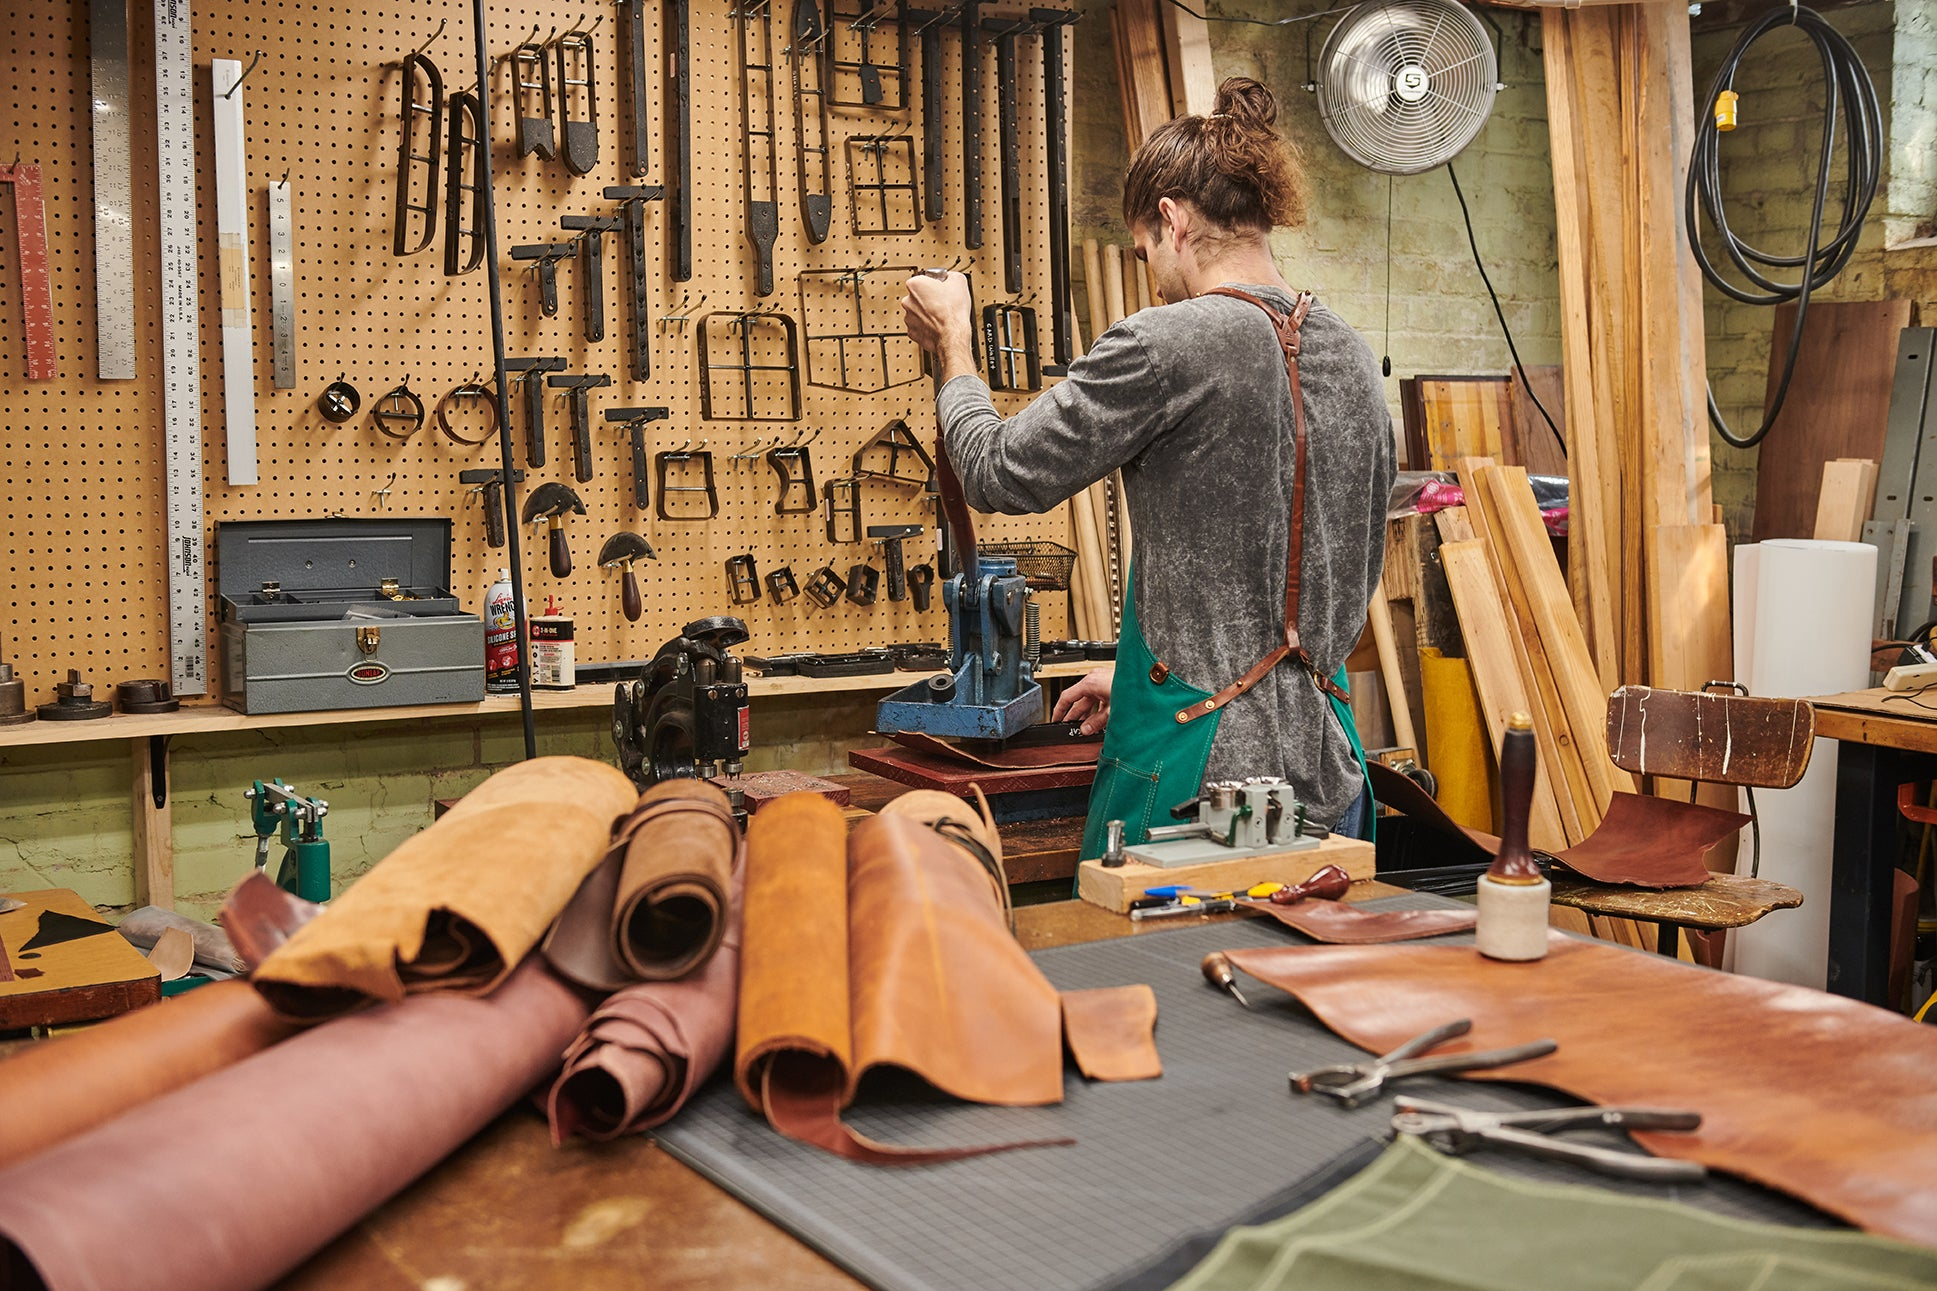 Artifact's Omaha Studio - Alec Die Cutting Leather Apron Parts